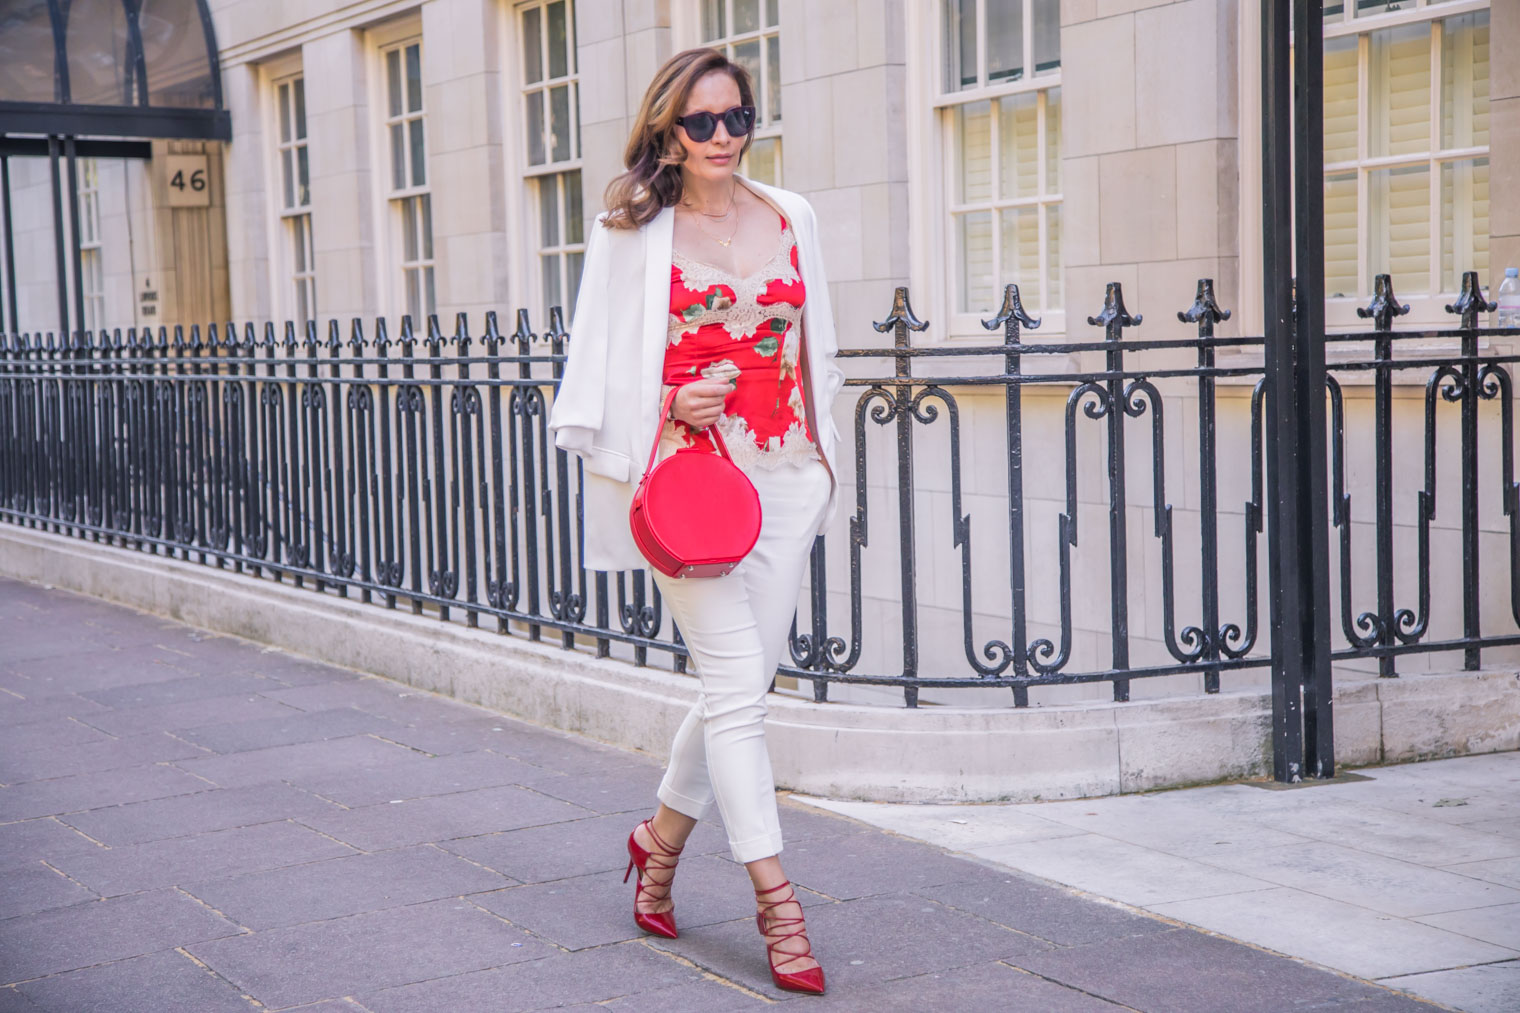 How to dress up white trousers with lace Dolce & Gabbana top